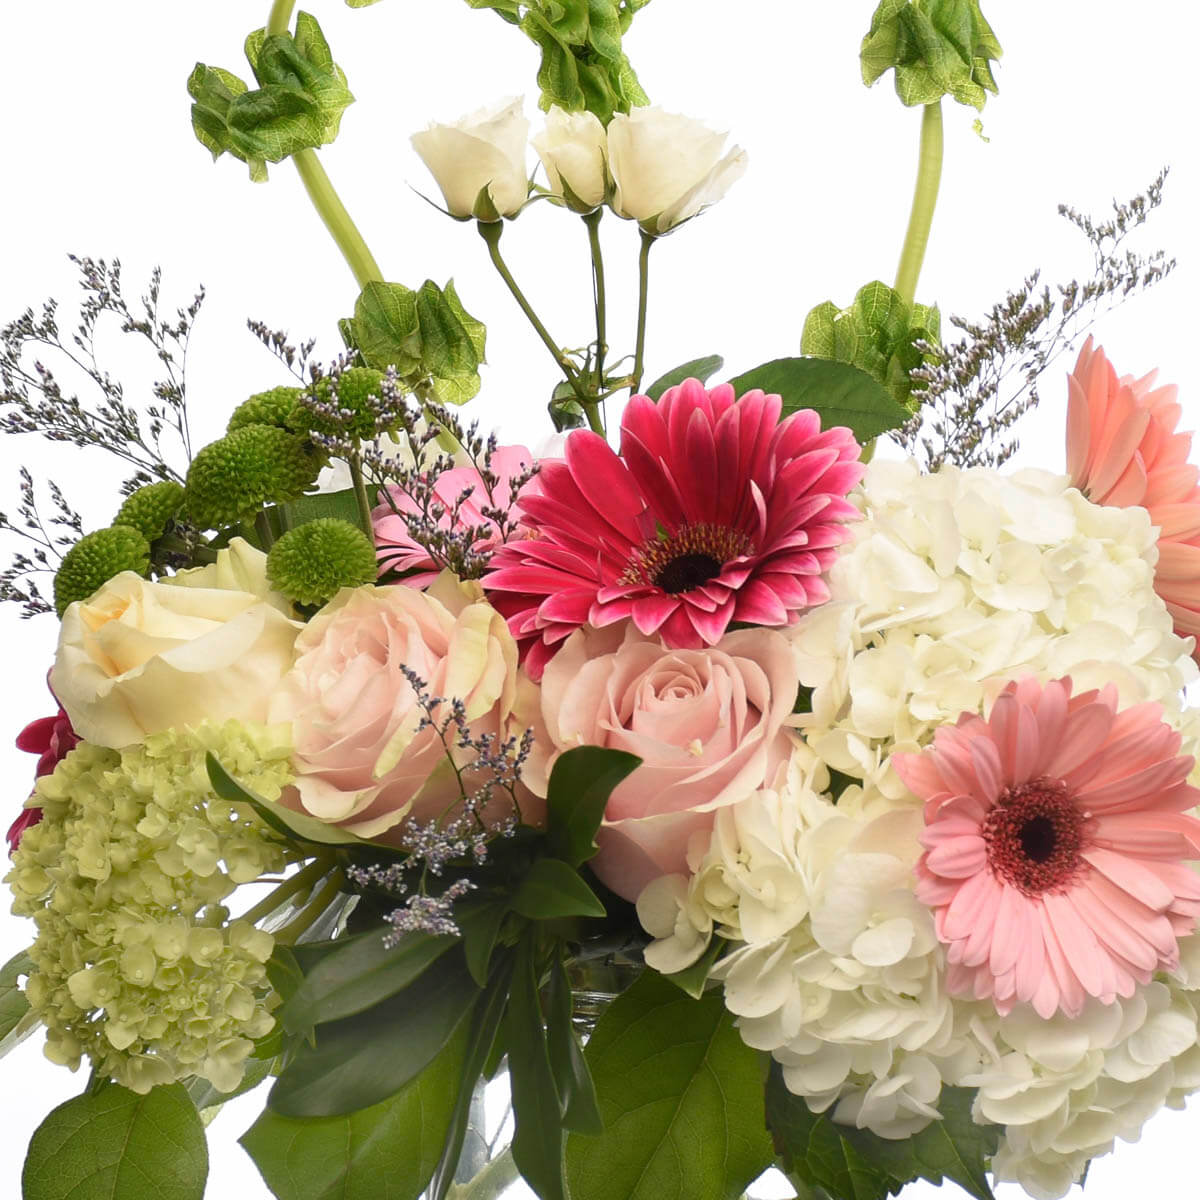 Metrotown Burnaby BC Florist - Flowers for Mom - Adele Rae